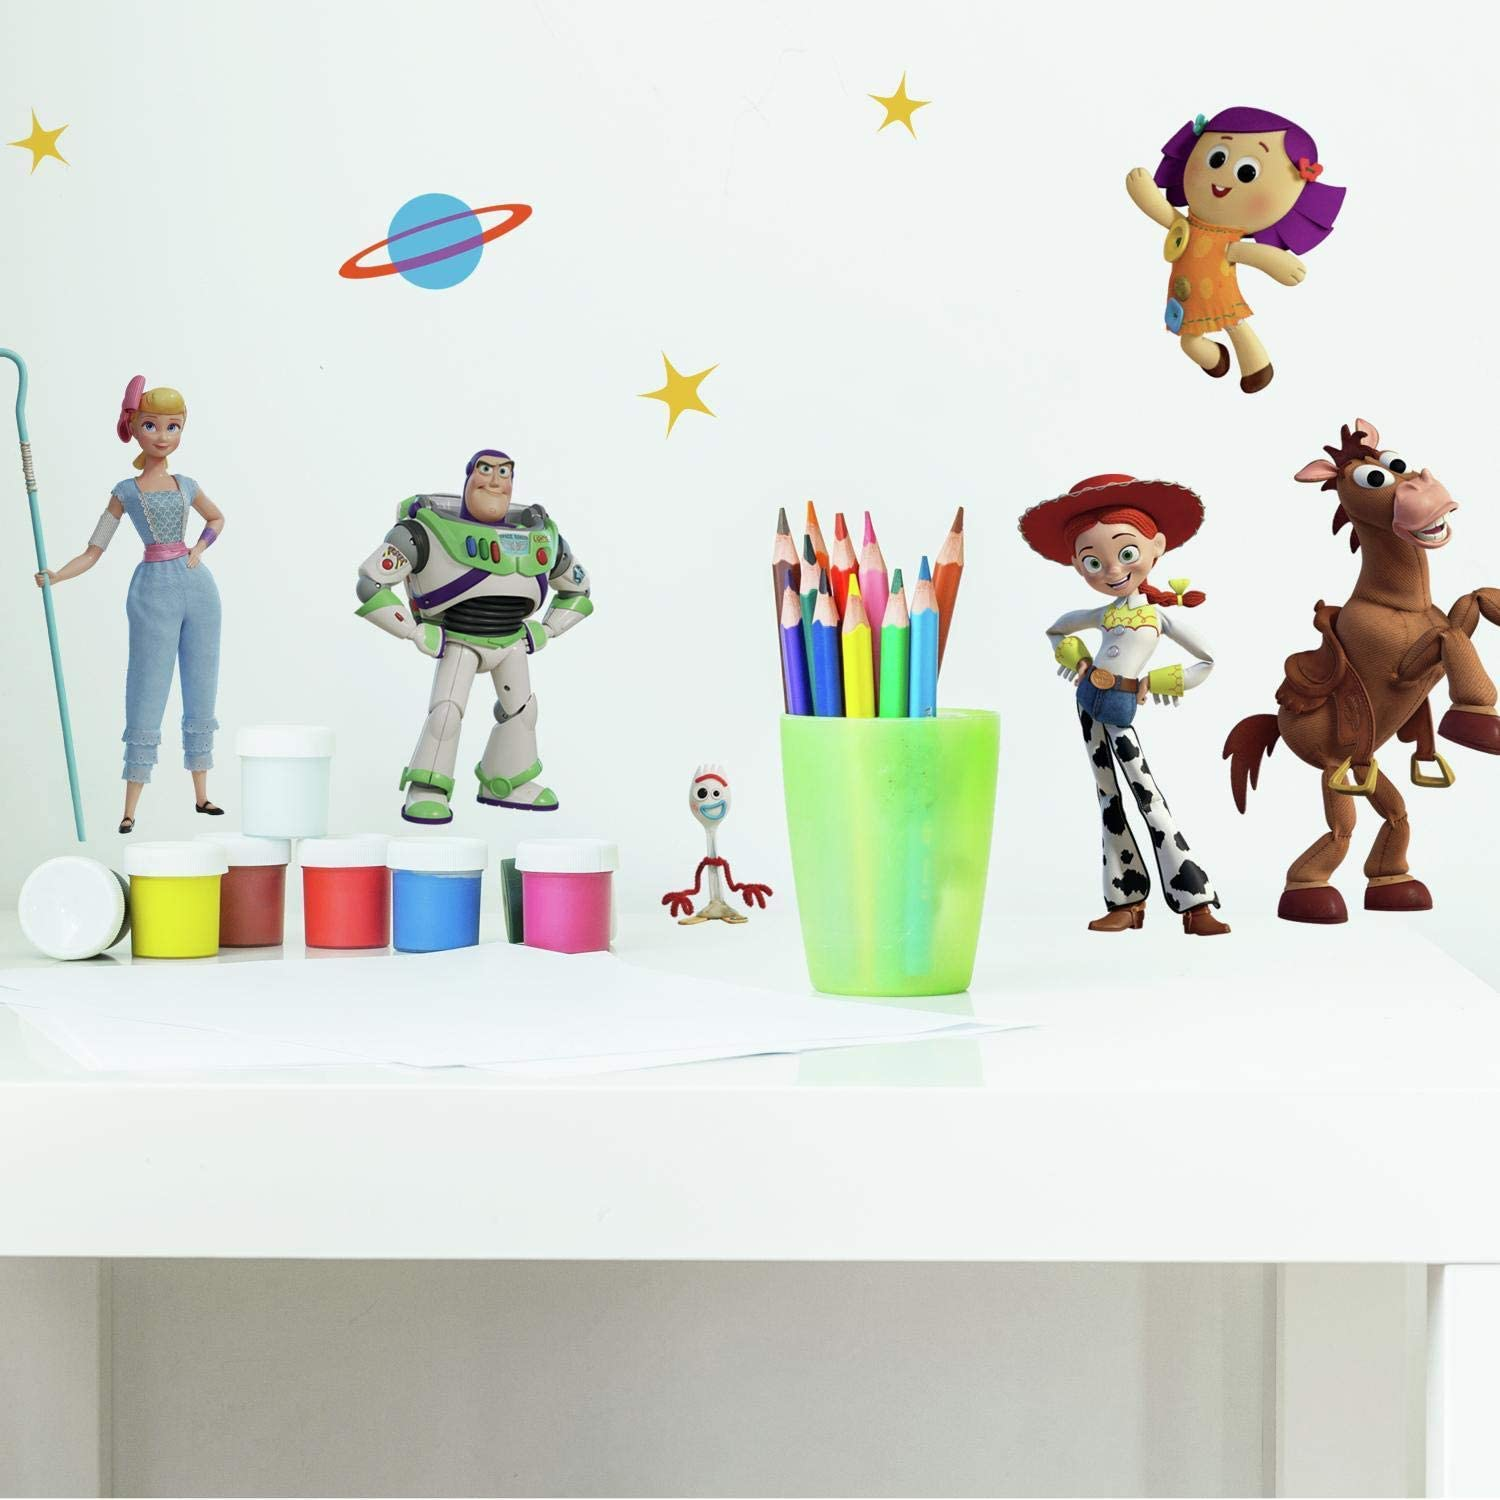 RoomMates Toy Story 4 Peel and Stick Wall Decals, green, blue, yellow - RMK4008SCS